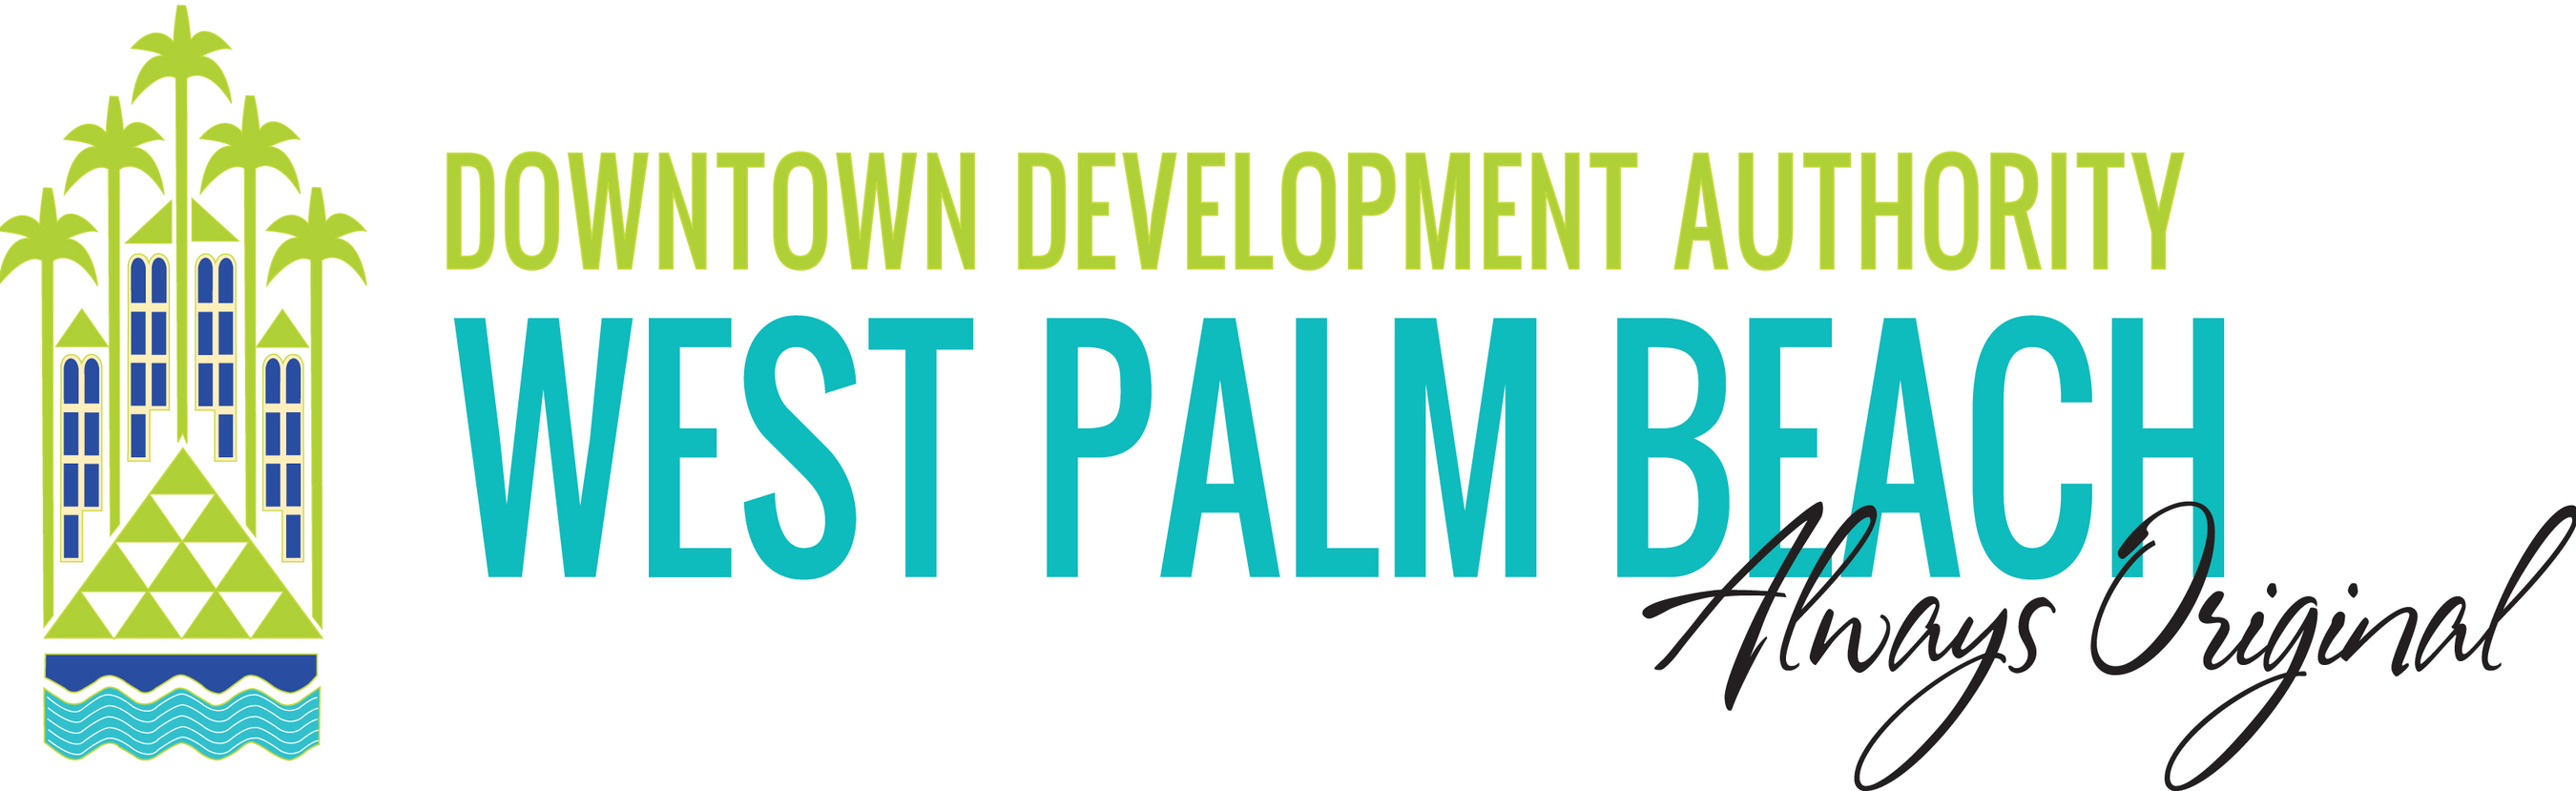 Former National CNU Chair Speaks On The Art Of Street Design In West Palm Beach, 5/19